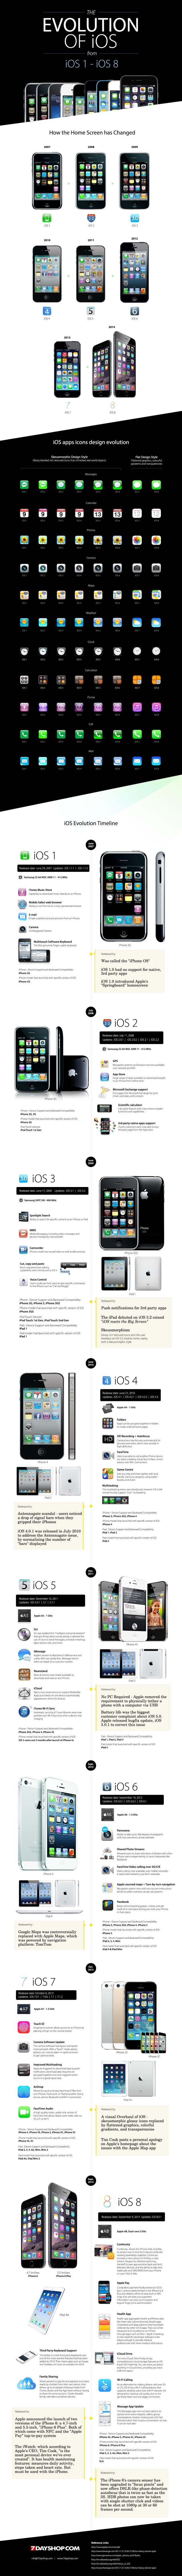 The Evolution of iOS 1 to iOS 8